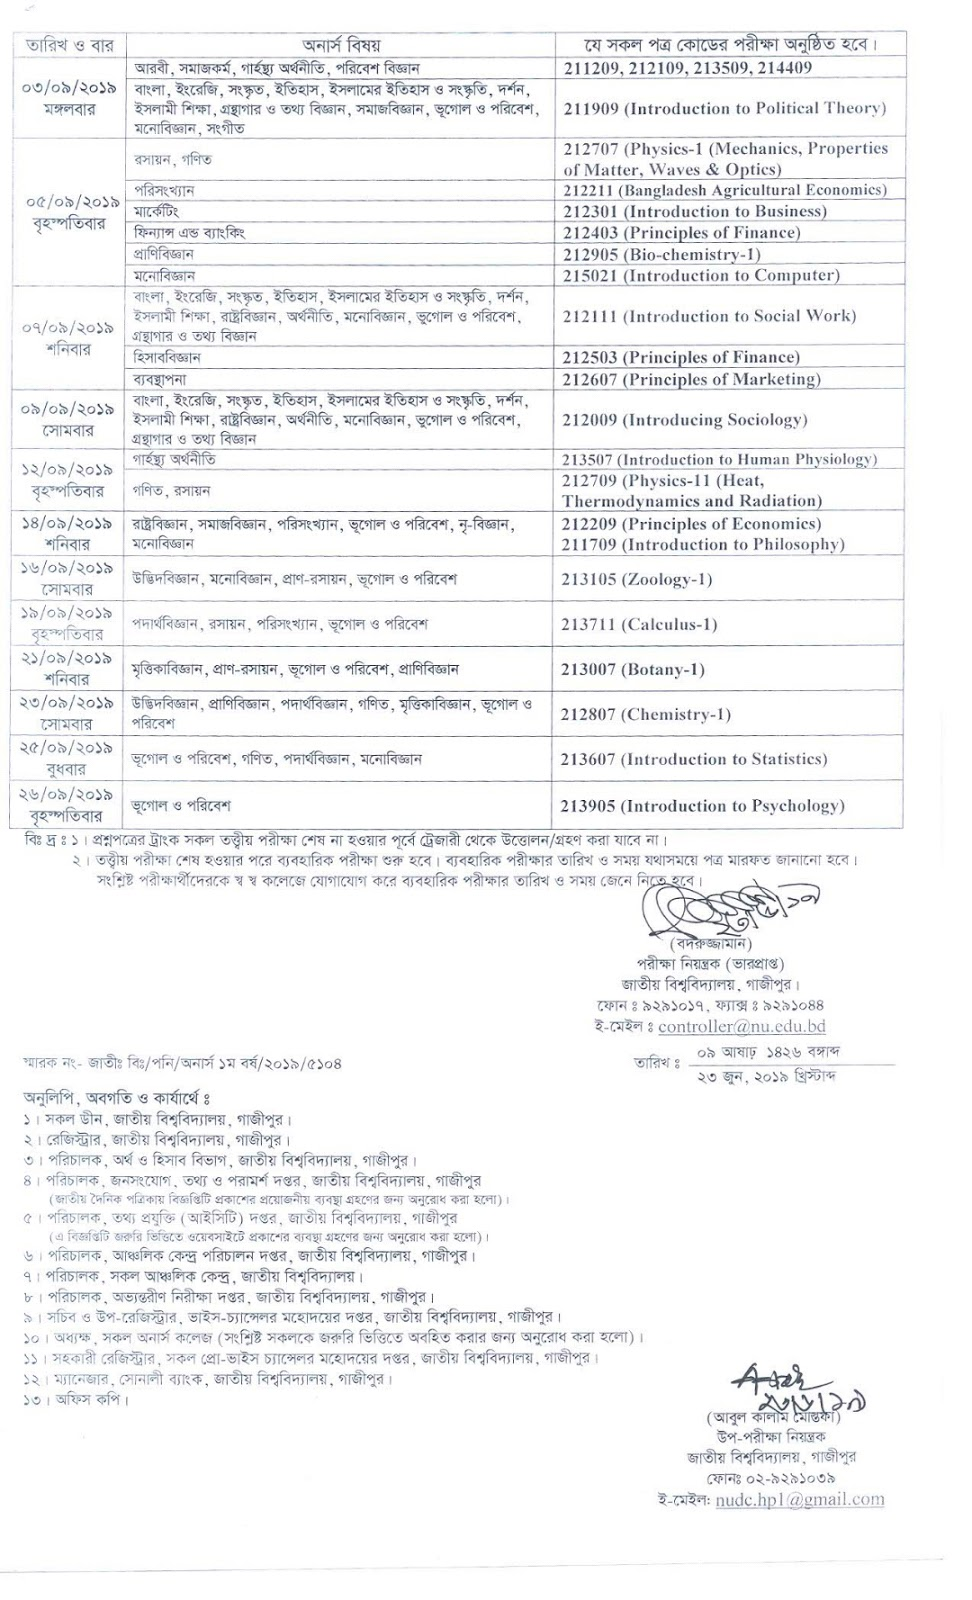 Honors 1st year exam routine 2019